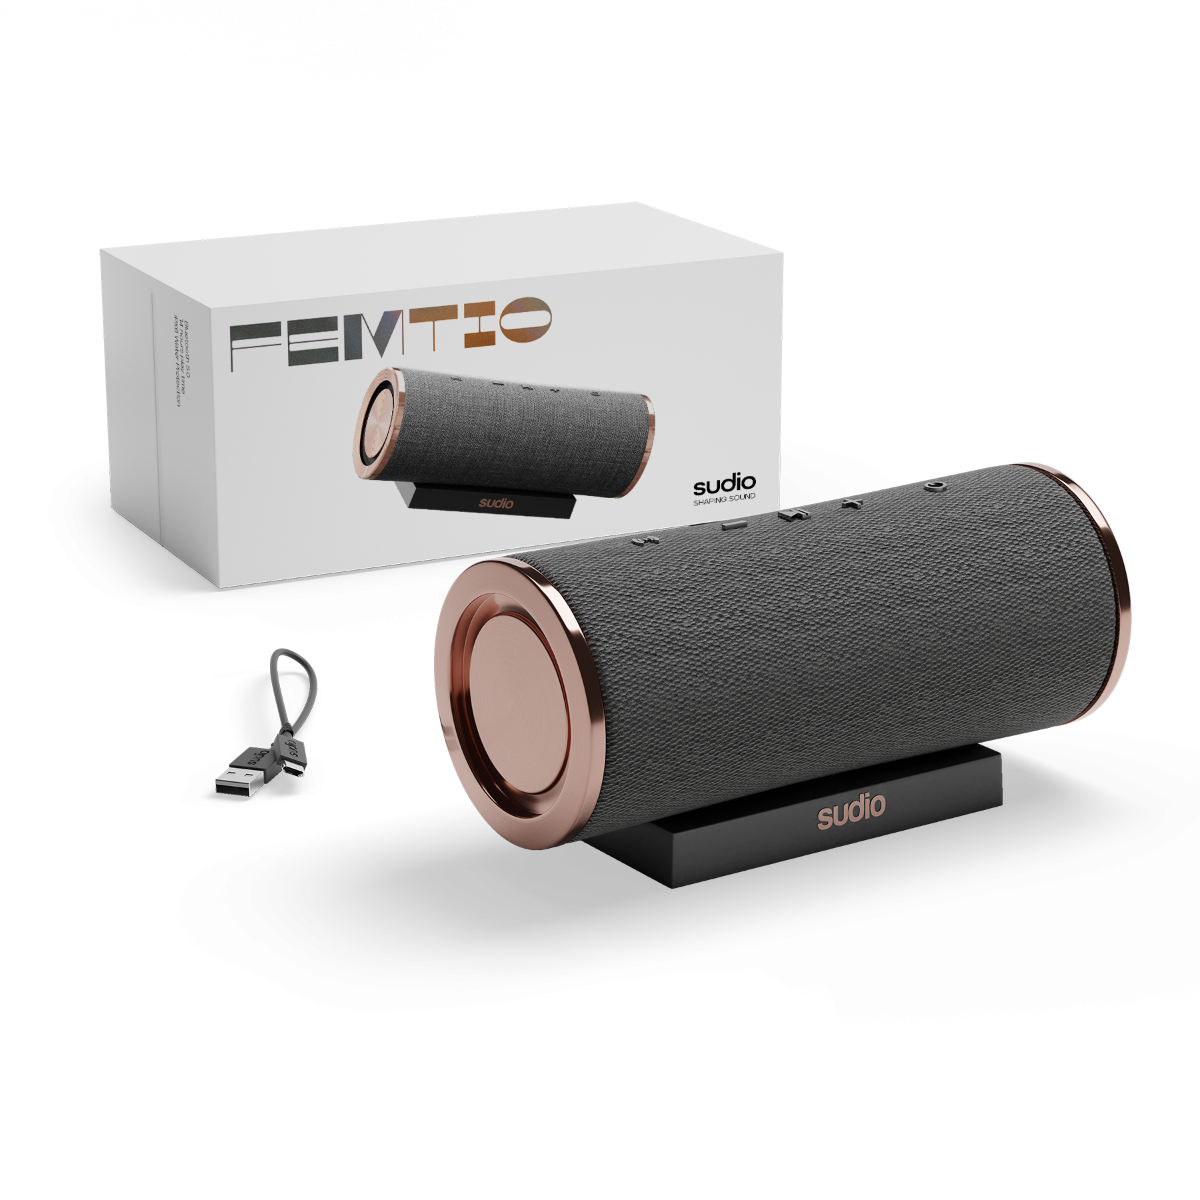 sudio Femtio Bluetooth Speaker Antracite/Copper